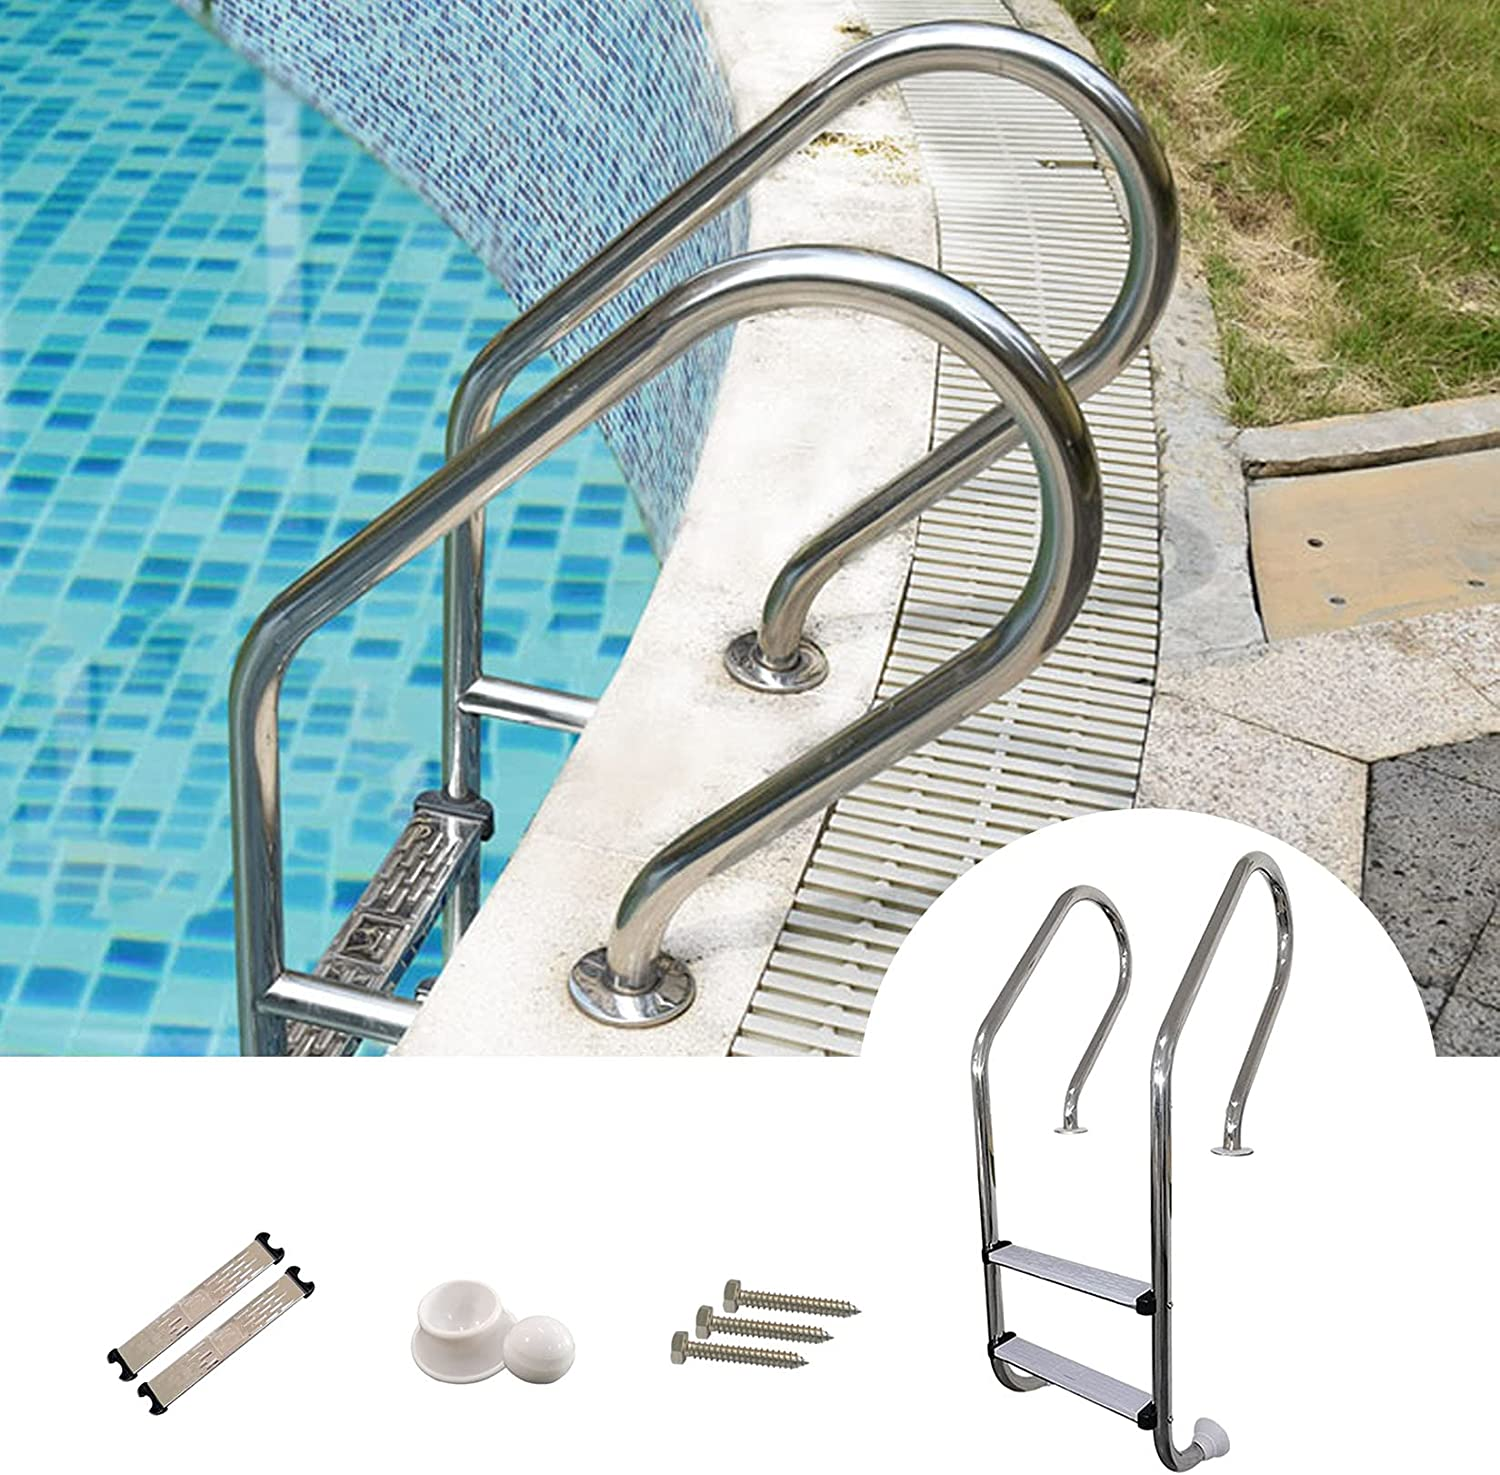 Handrail Railing Long Beach Mall 2-Step Stainless Steel Pool Swimmi Ladder low-pricing Step